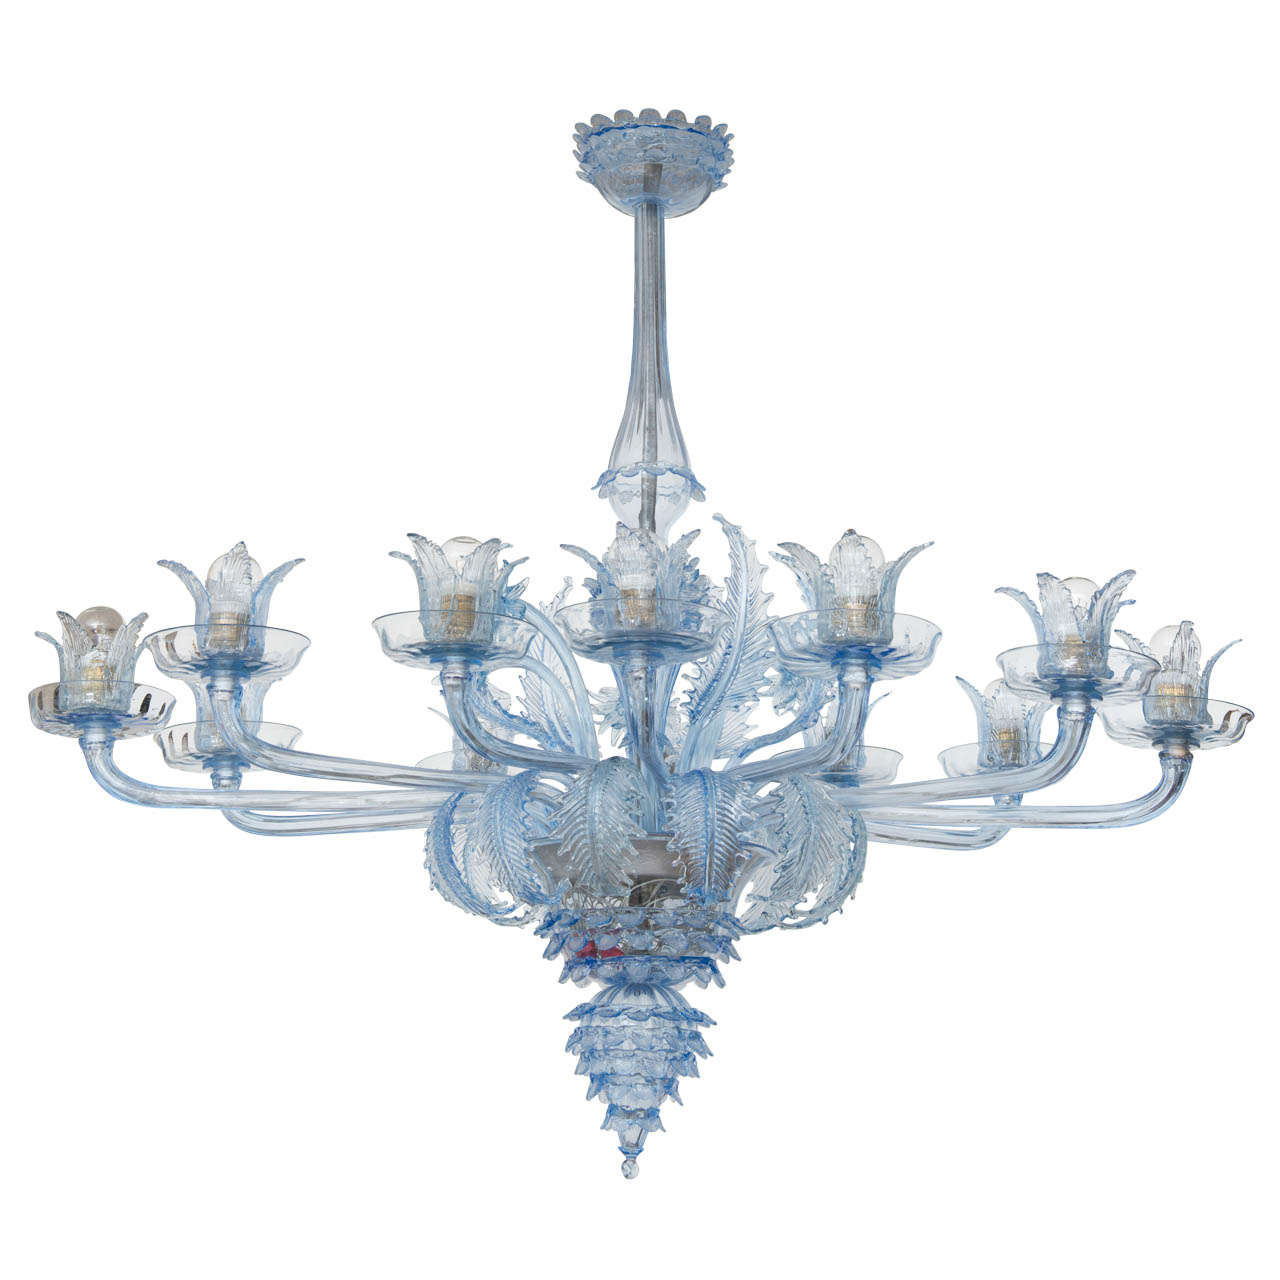 venetian chandelier by barovier e toso for sale at 1stdibs. Black Bedroom Furniture Sets. Home Design Ideas